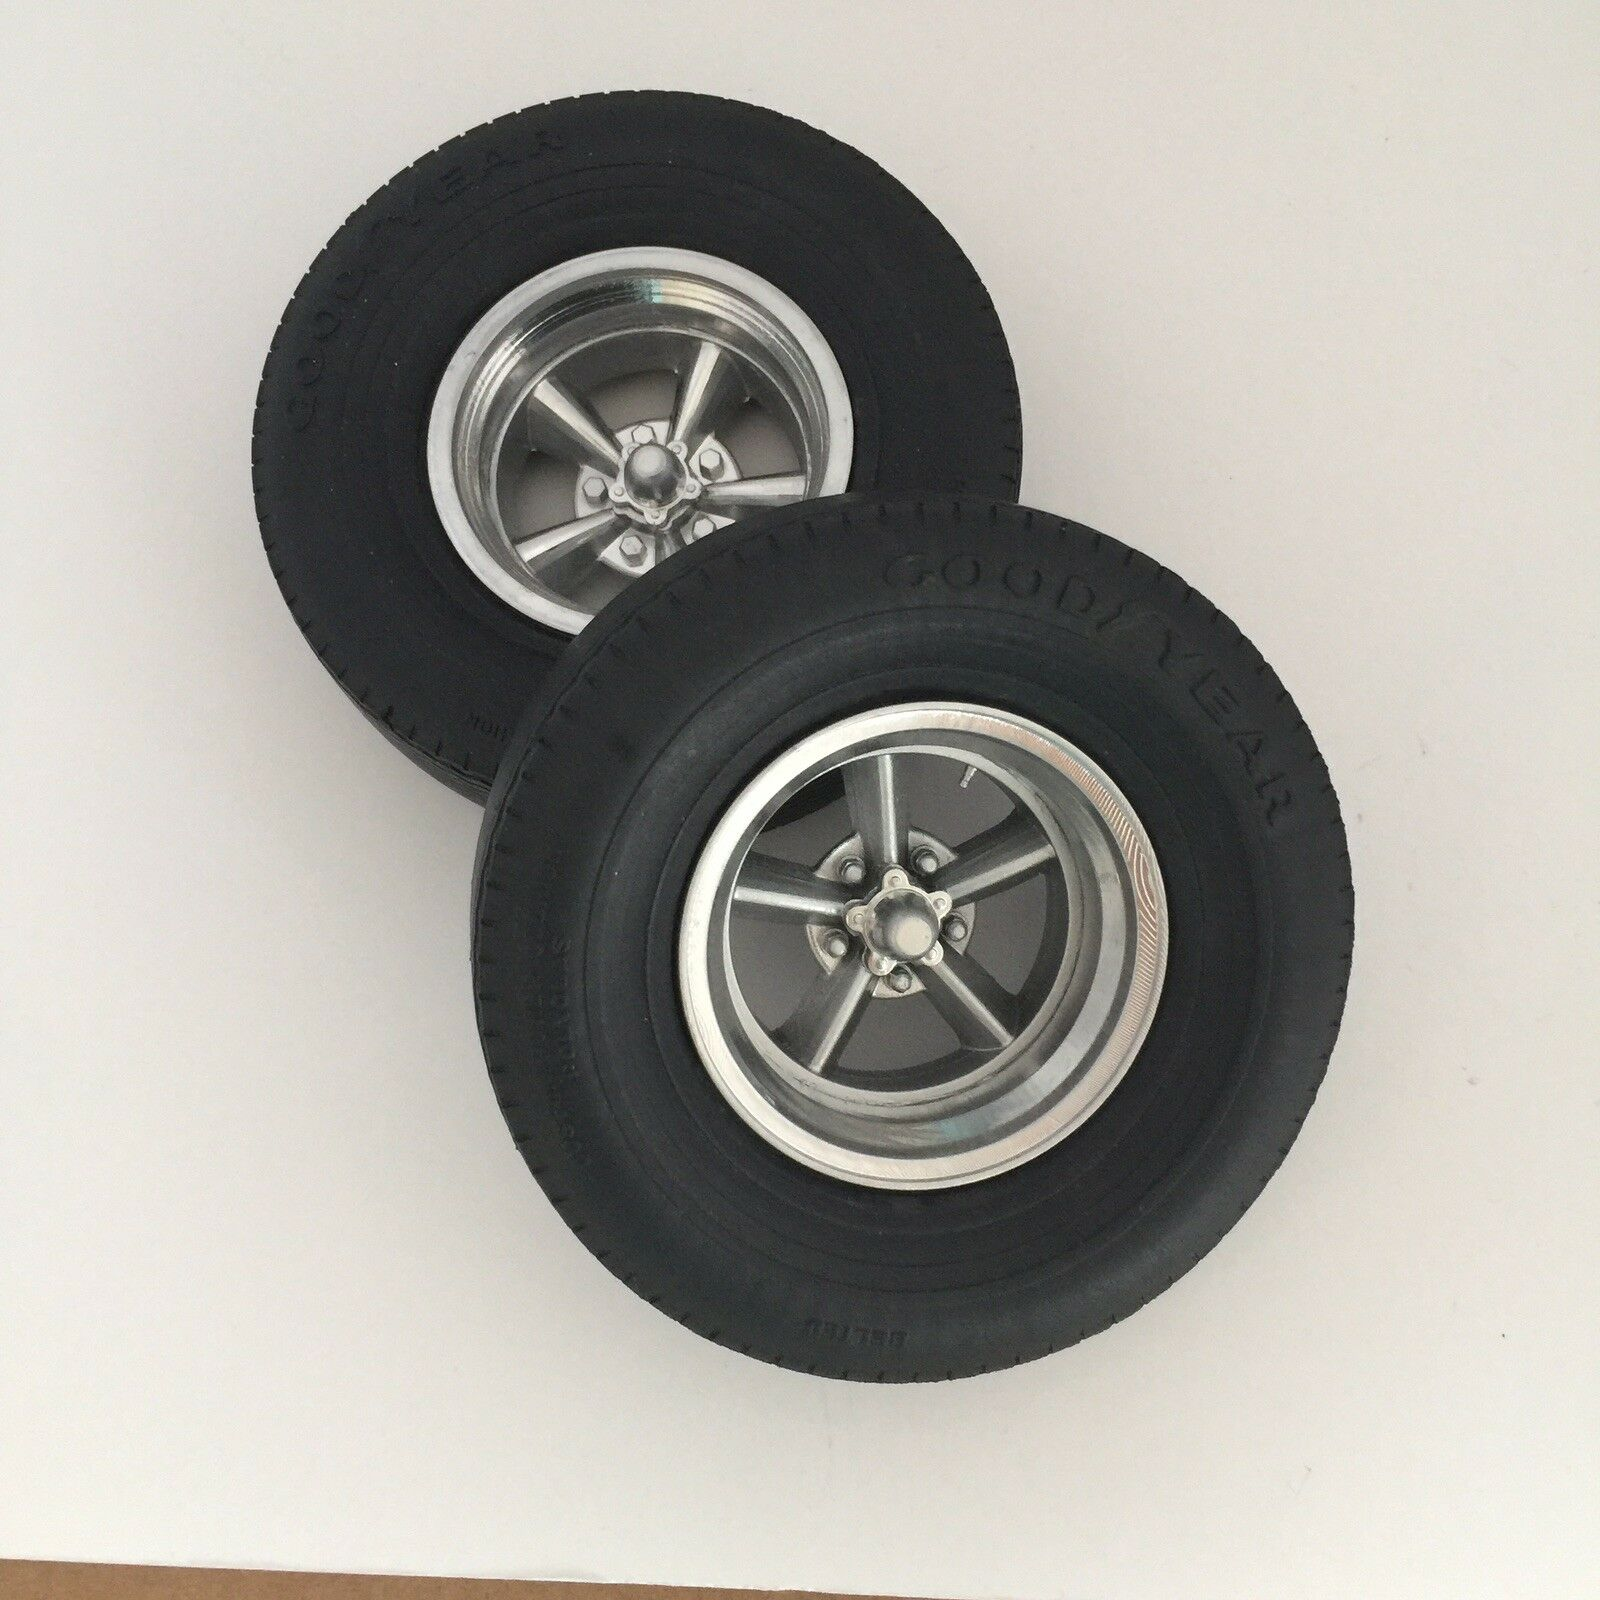 Two 1 8 Cast Resin Rear Wheels caps Revell-Monogram for soft tires(not Included)